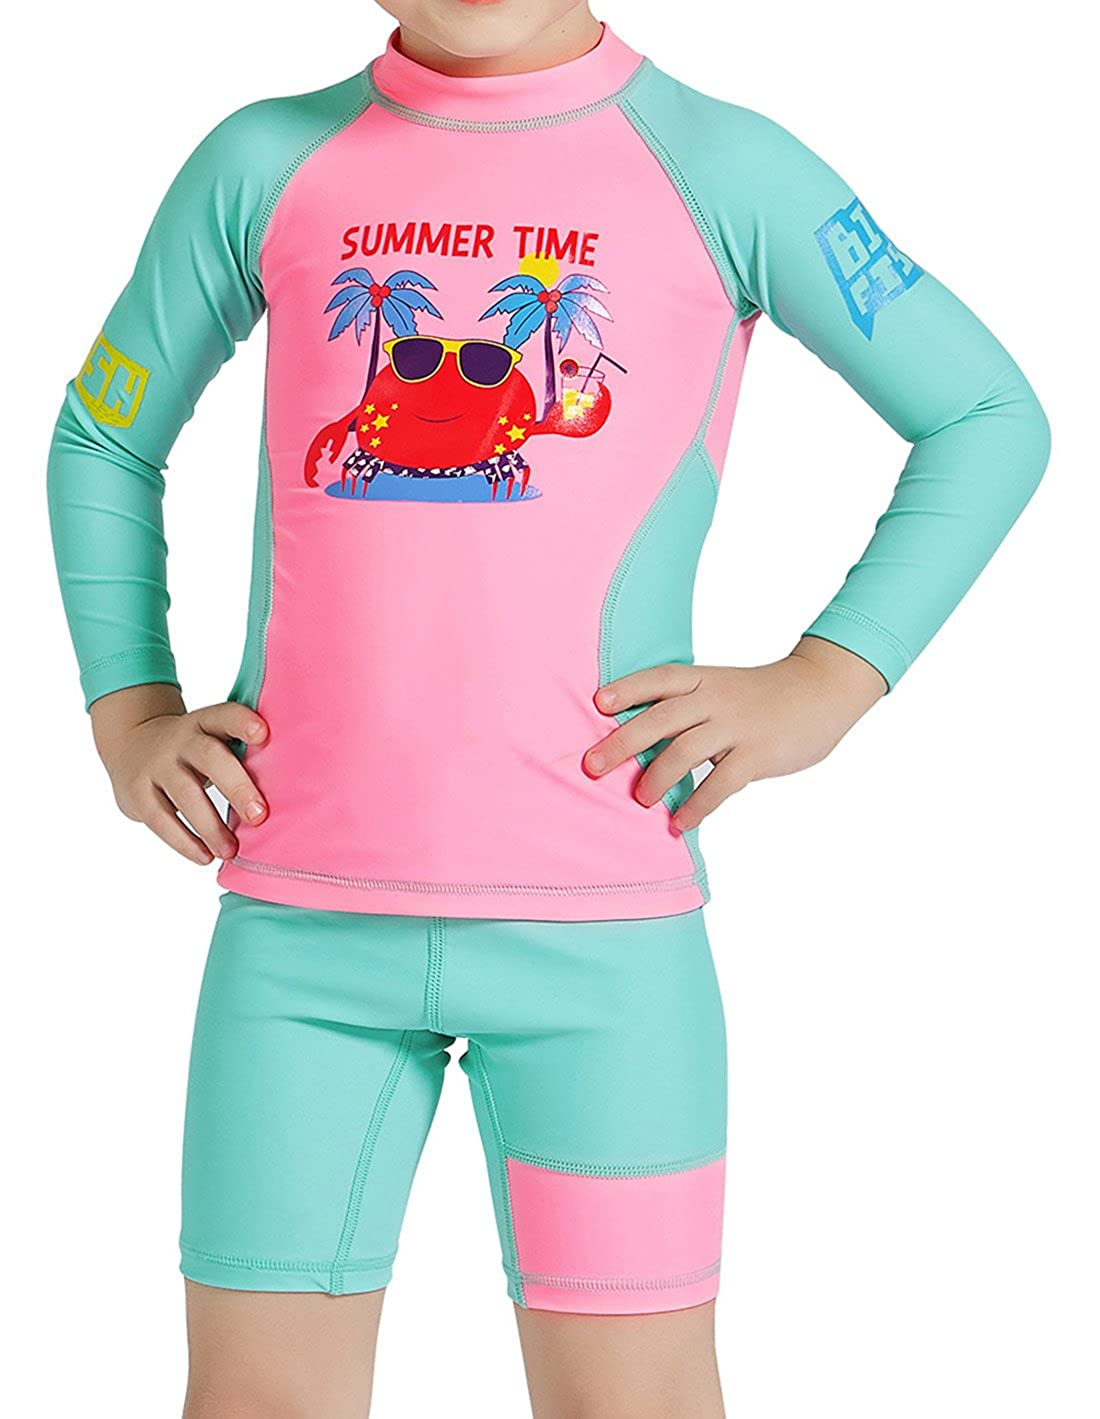 DIVE&SAIL Girls Two-Piece Long Sleeve Rashguard Set with Sun Protection 4-9Y